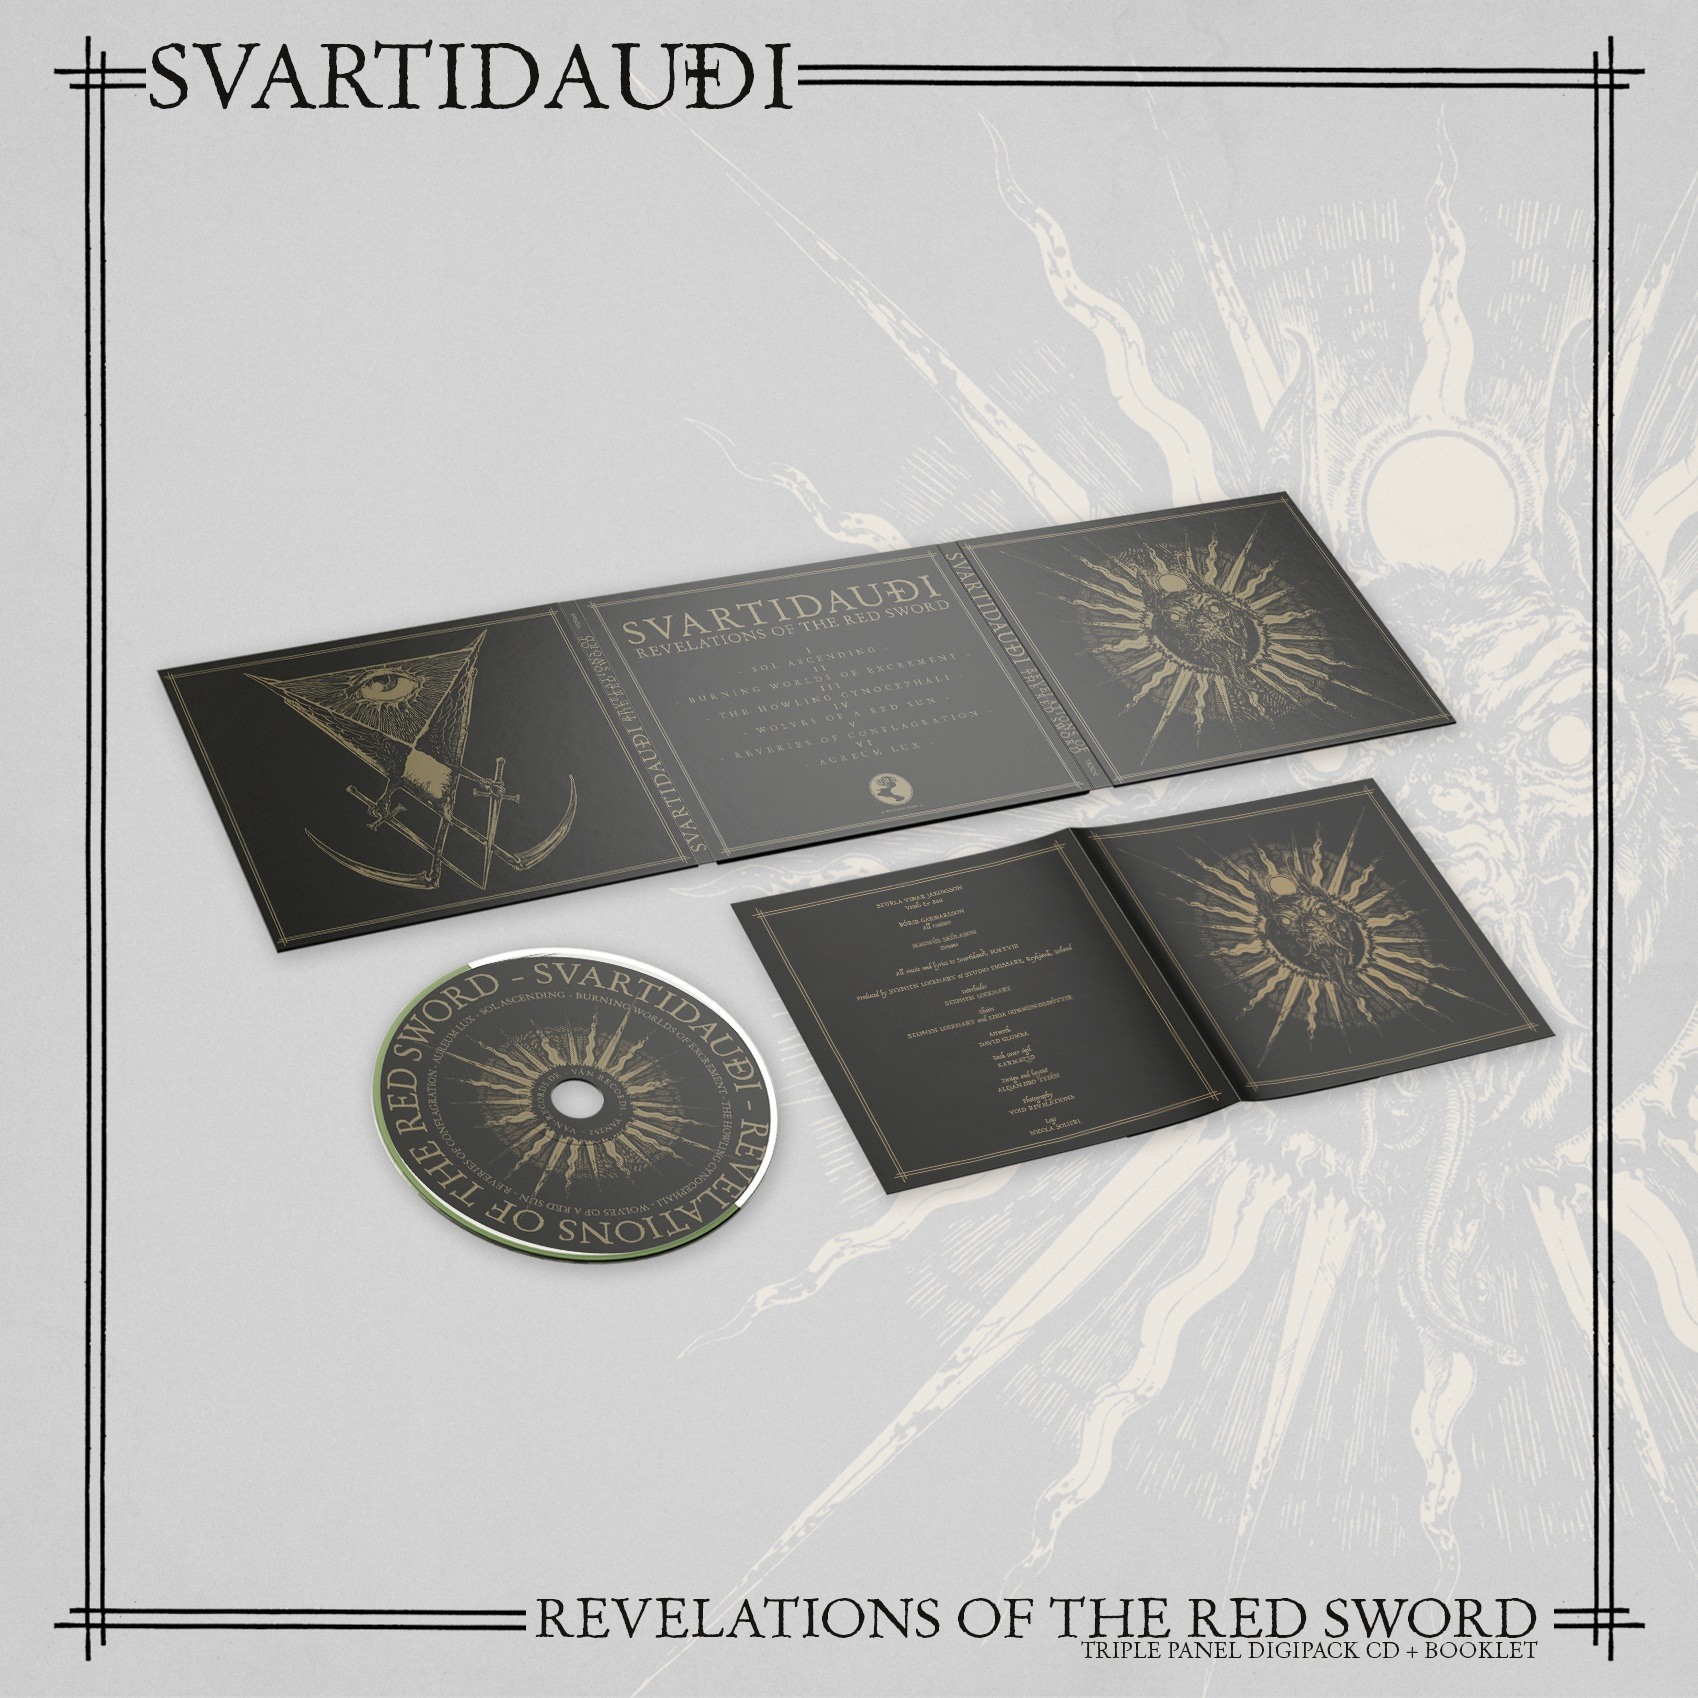 SVARTIDAUDI – Revelations of The Red Sword Digipack CD